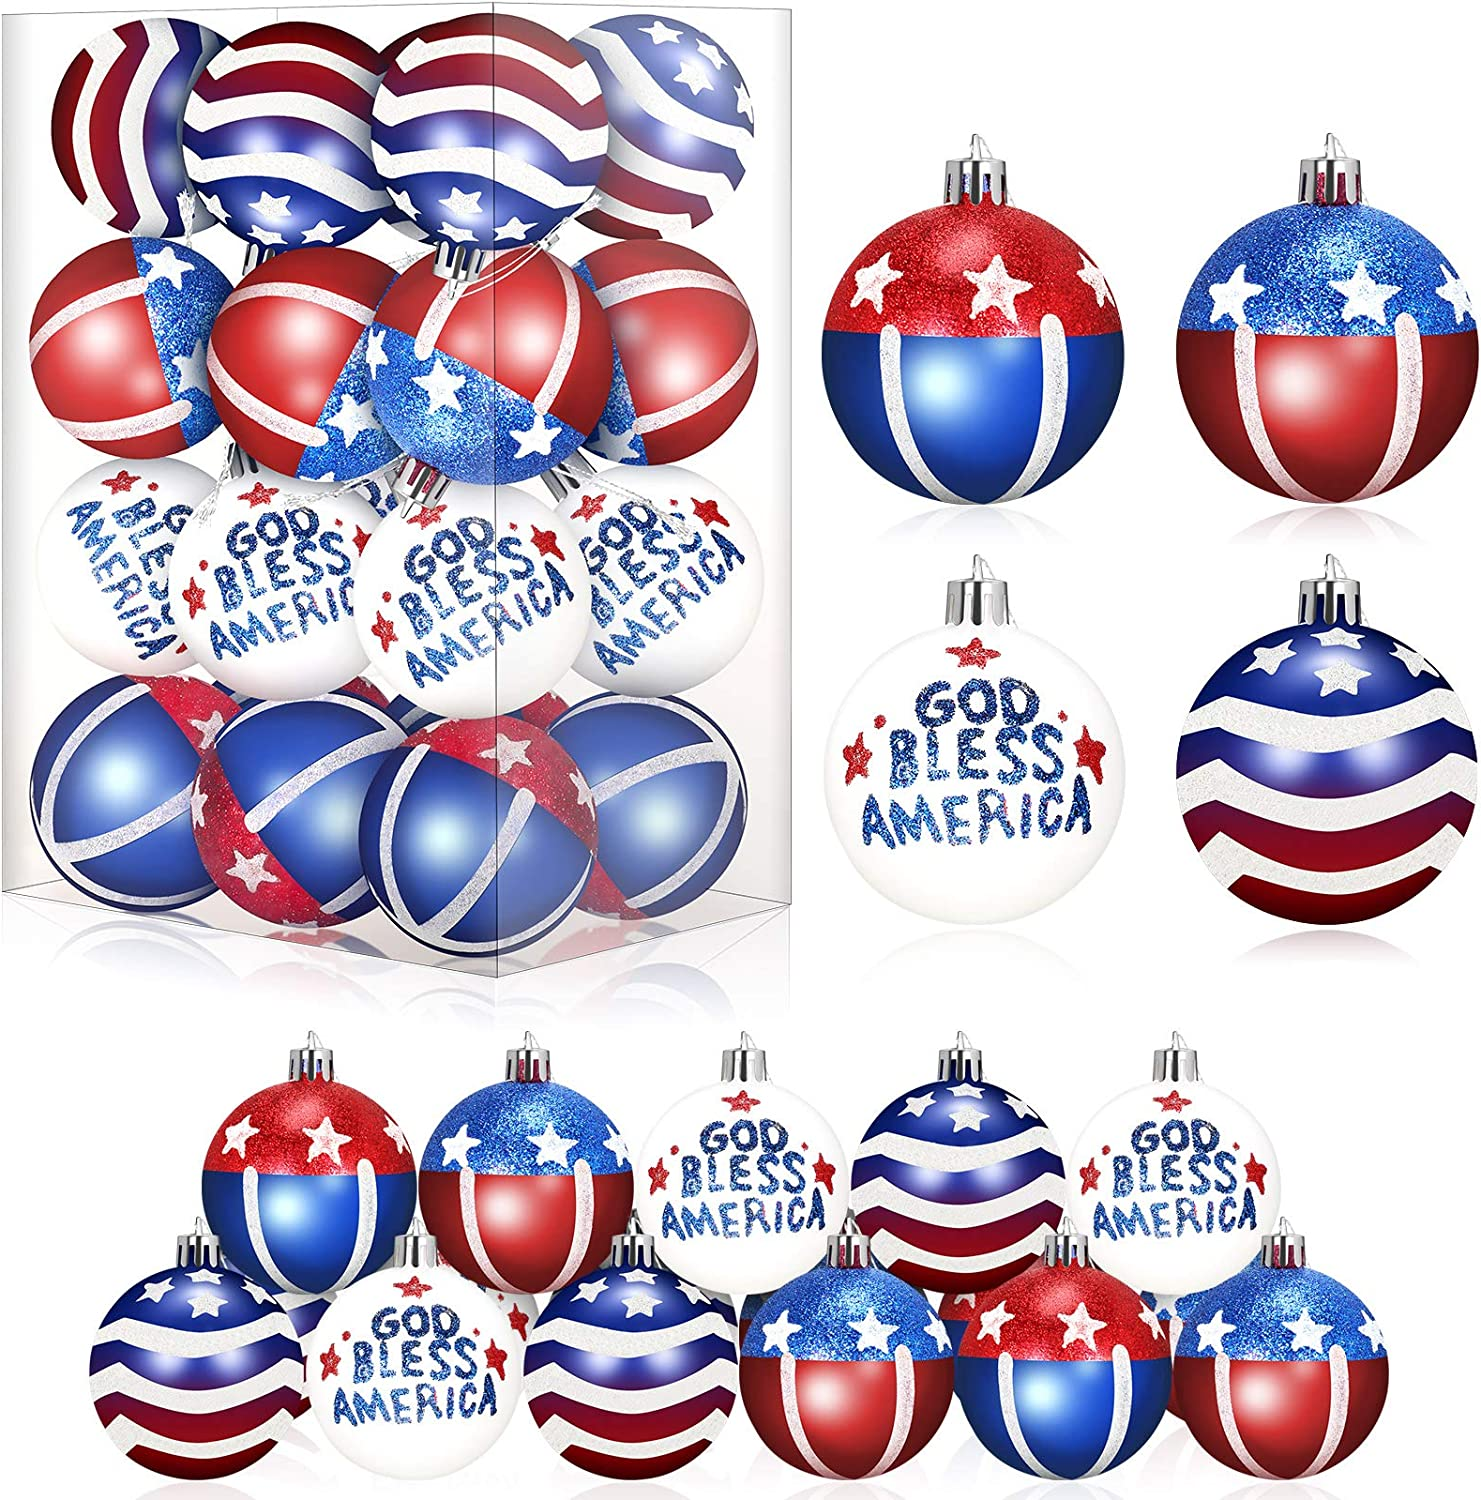 4th of July Patriotic Ball Hanging Pendant American Flag Tree Ornament Hanging Ball Prop for USA Themed Party Veteran's Day Independence Day Christmas Holiday Wedding Tree Home Wall Decor (24 Pieces)